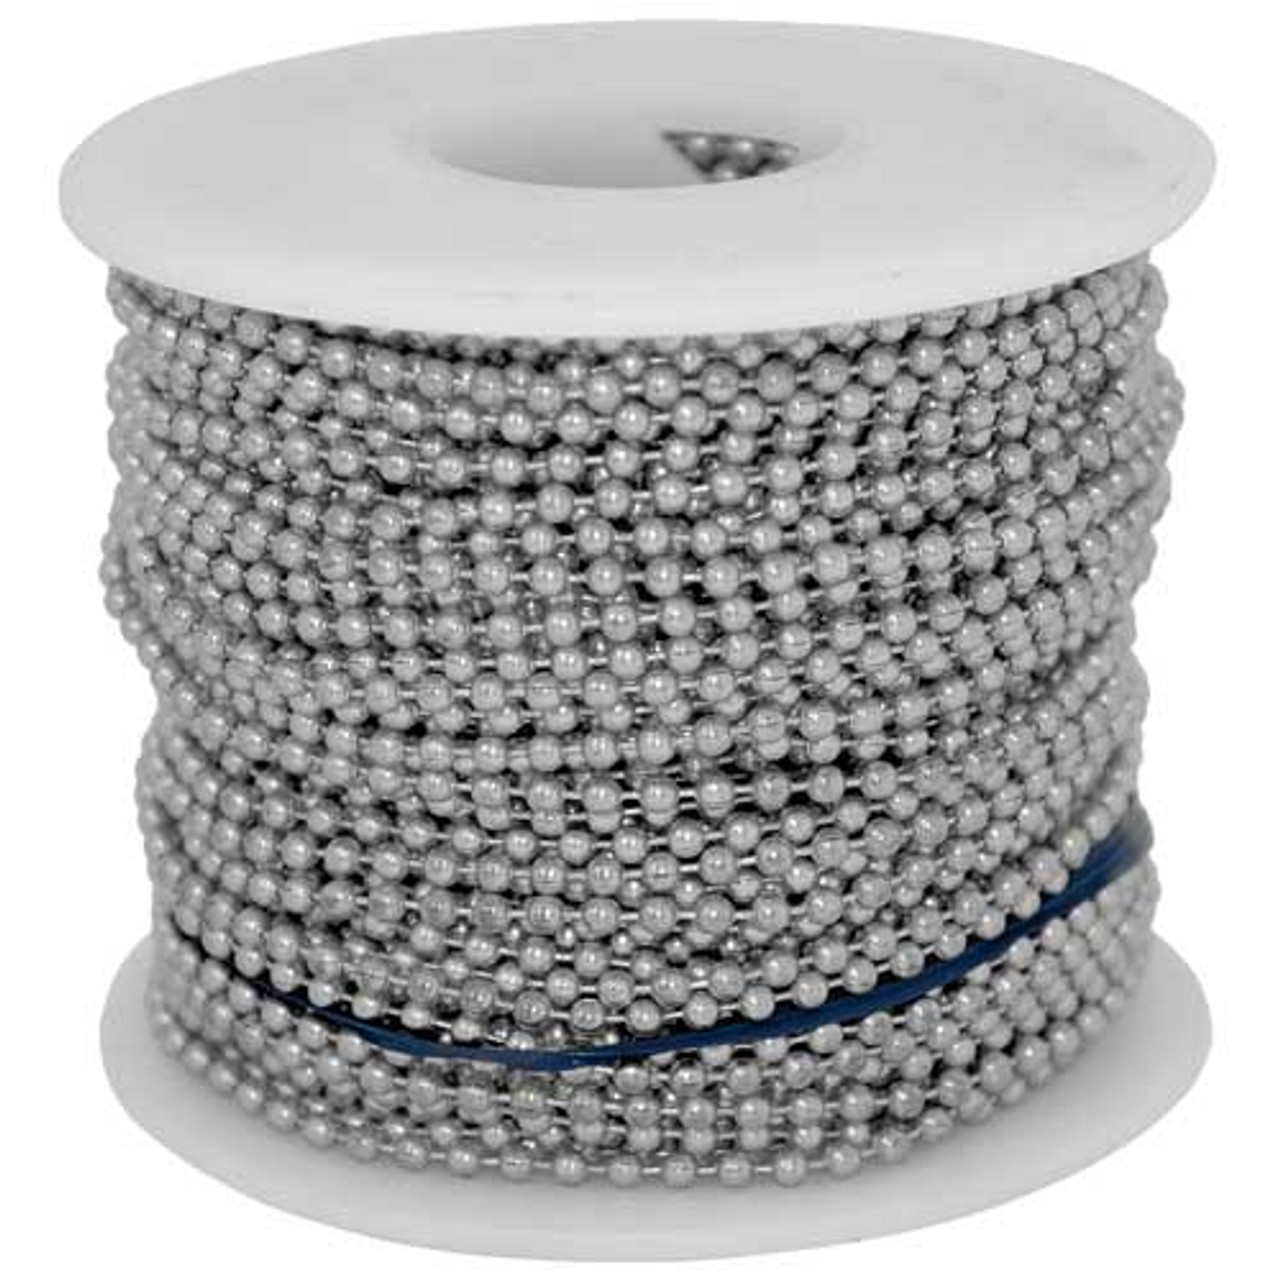 #3 aluminum ball chain or bead chain roll/spool. This is the most economical way to purchase the #3 ball chain and is great if you want to save money while making your own beaded chain necklaces.